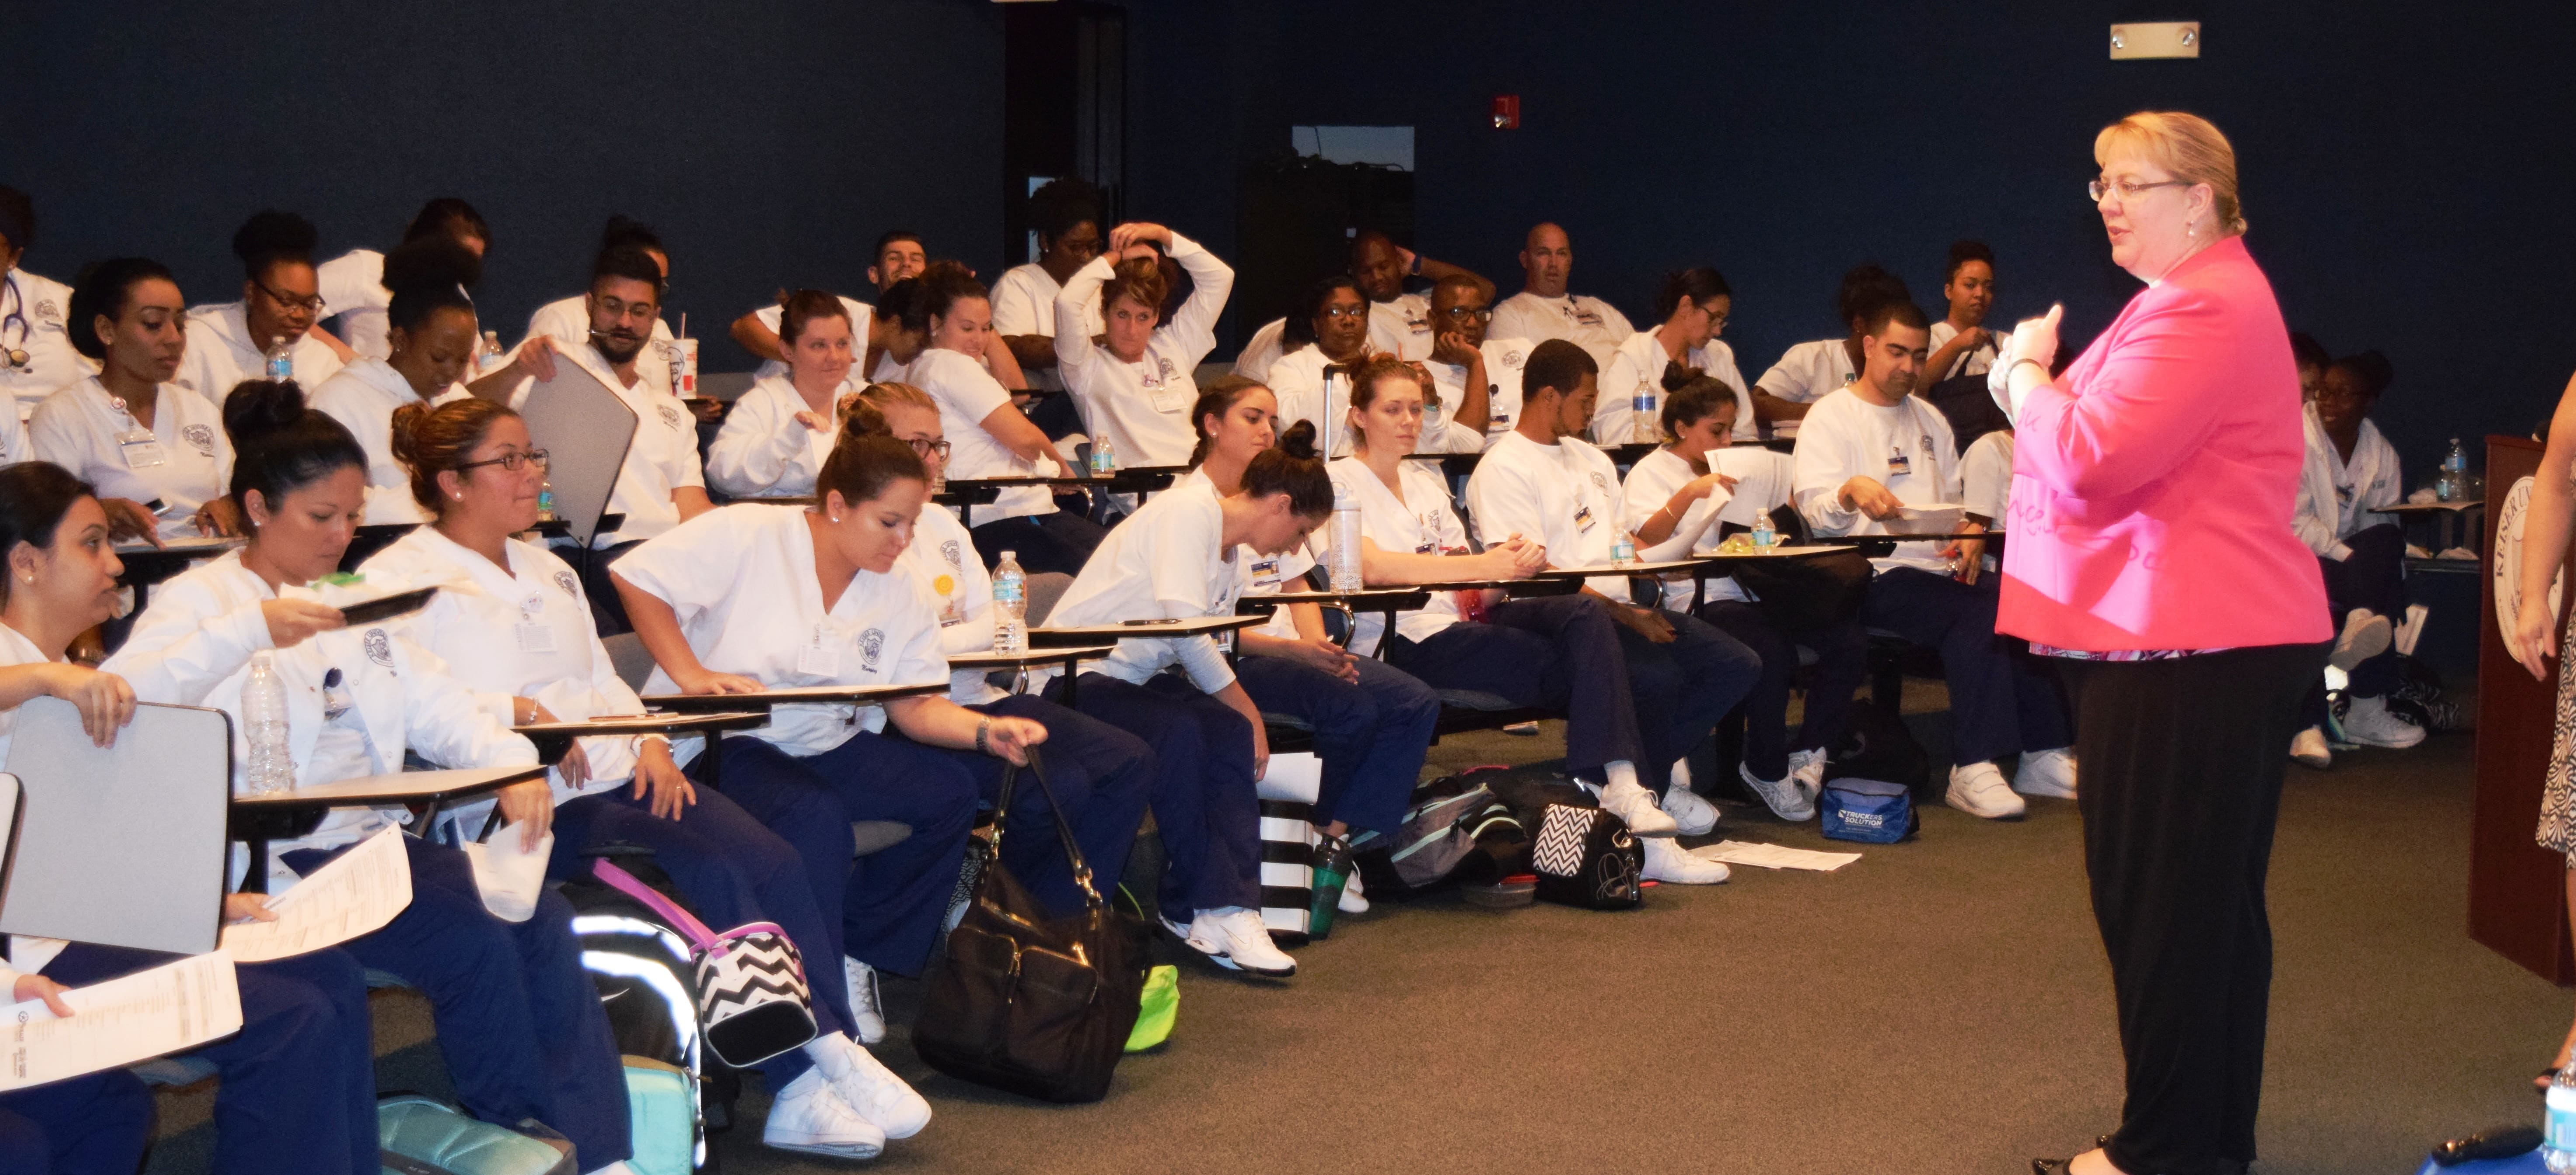 Nursing Students at Ft. Lauderdale Campus Visited by a Representative of Broward Health Medical Center